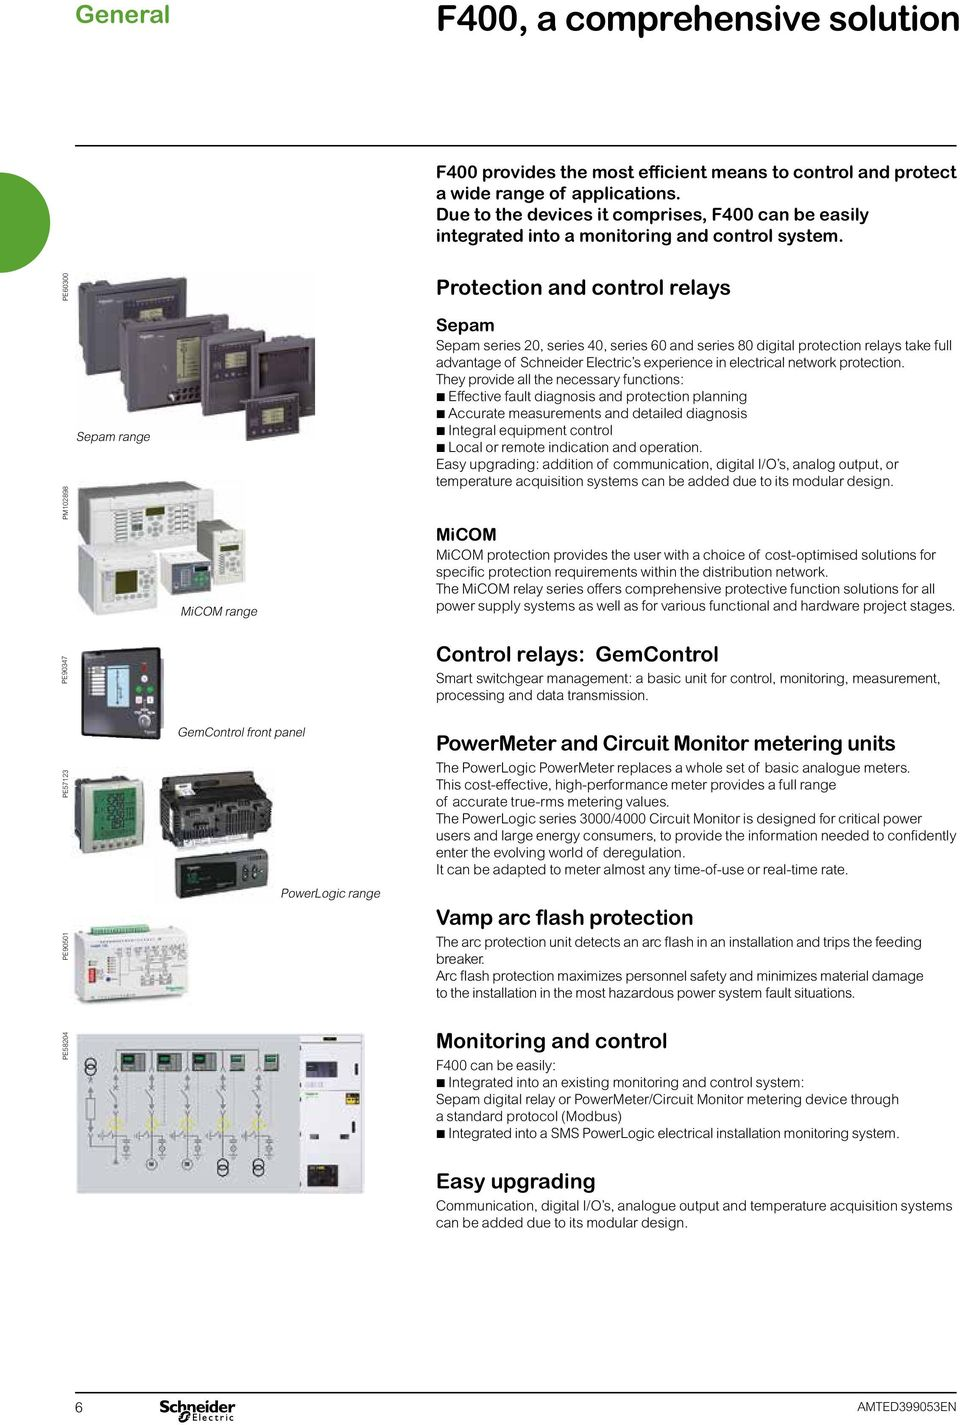 medium resolution of pe58204 pe90501 pe57123 pe90347 pm102898 pe60300 sepam range micom range gemcontrol front panel powerlogic range protection